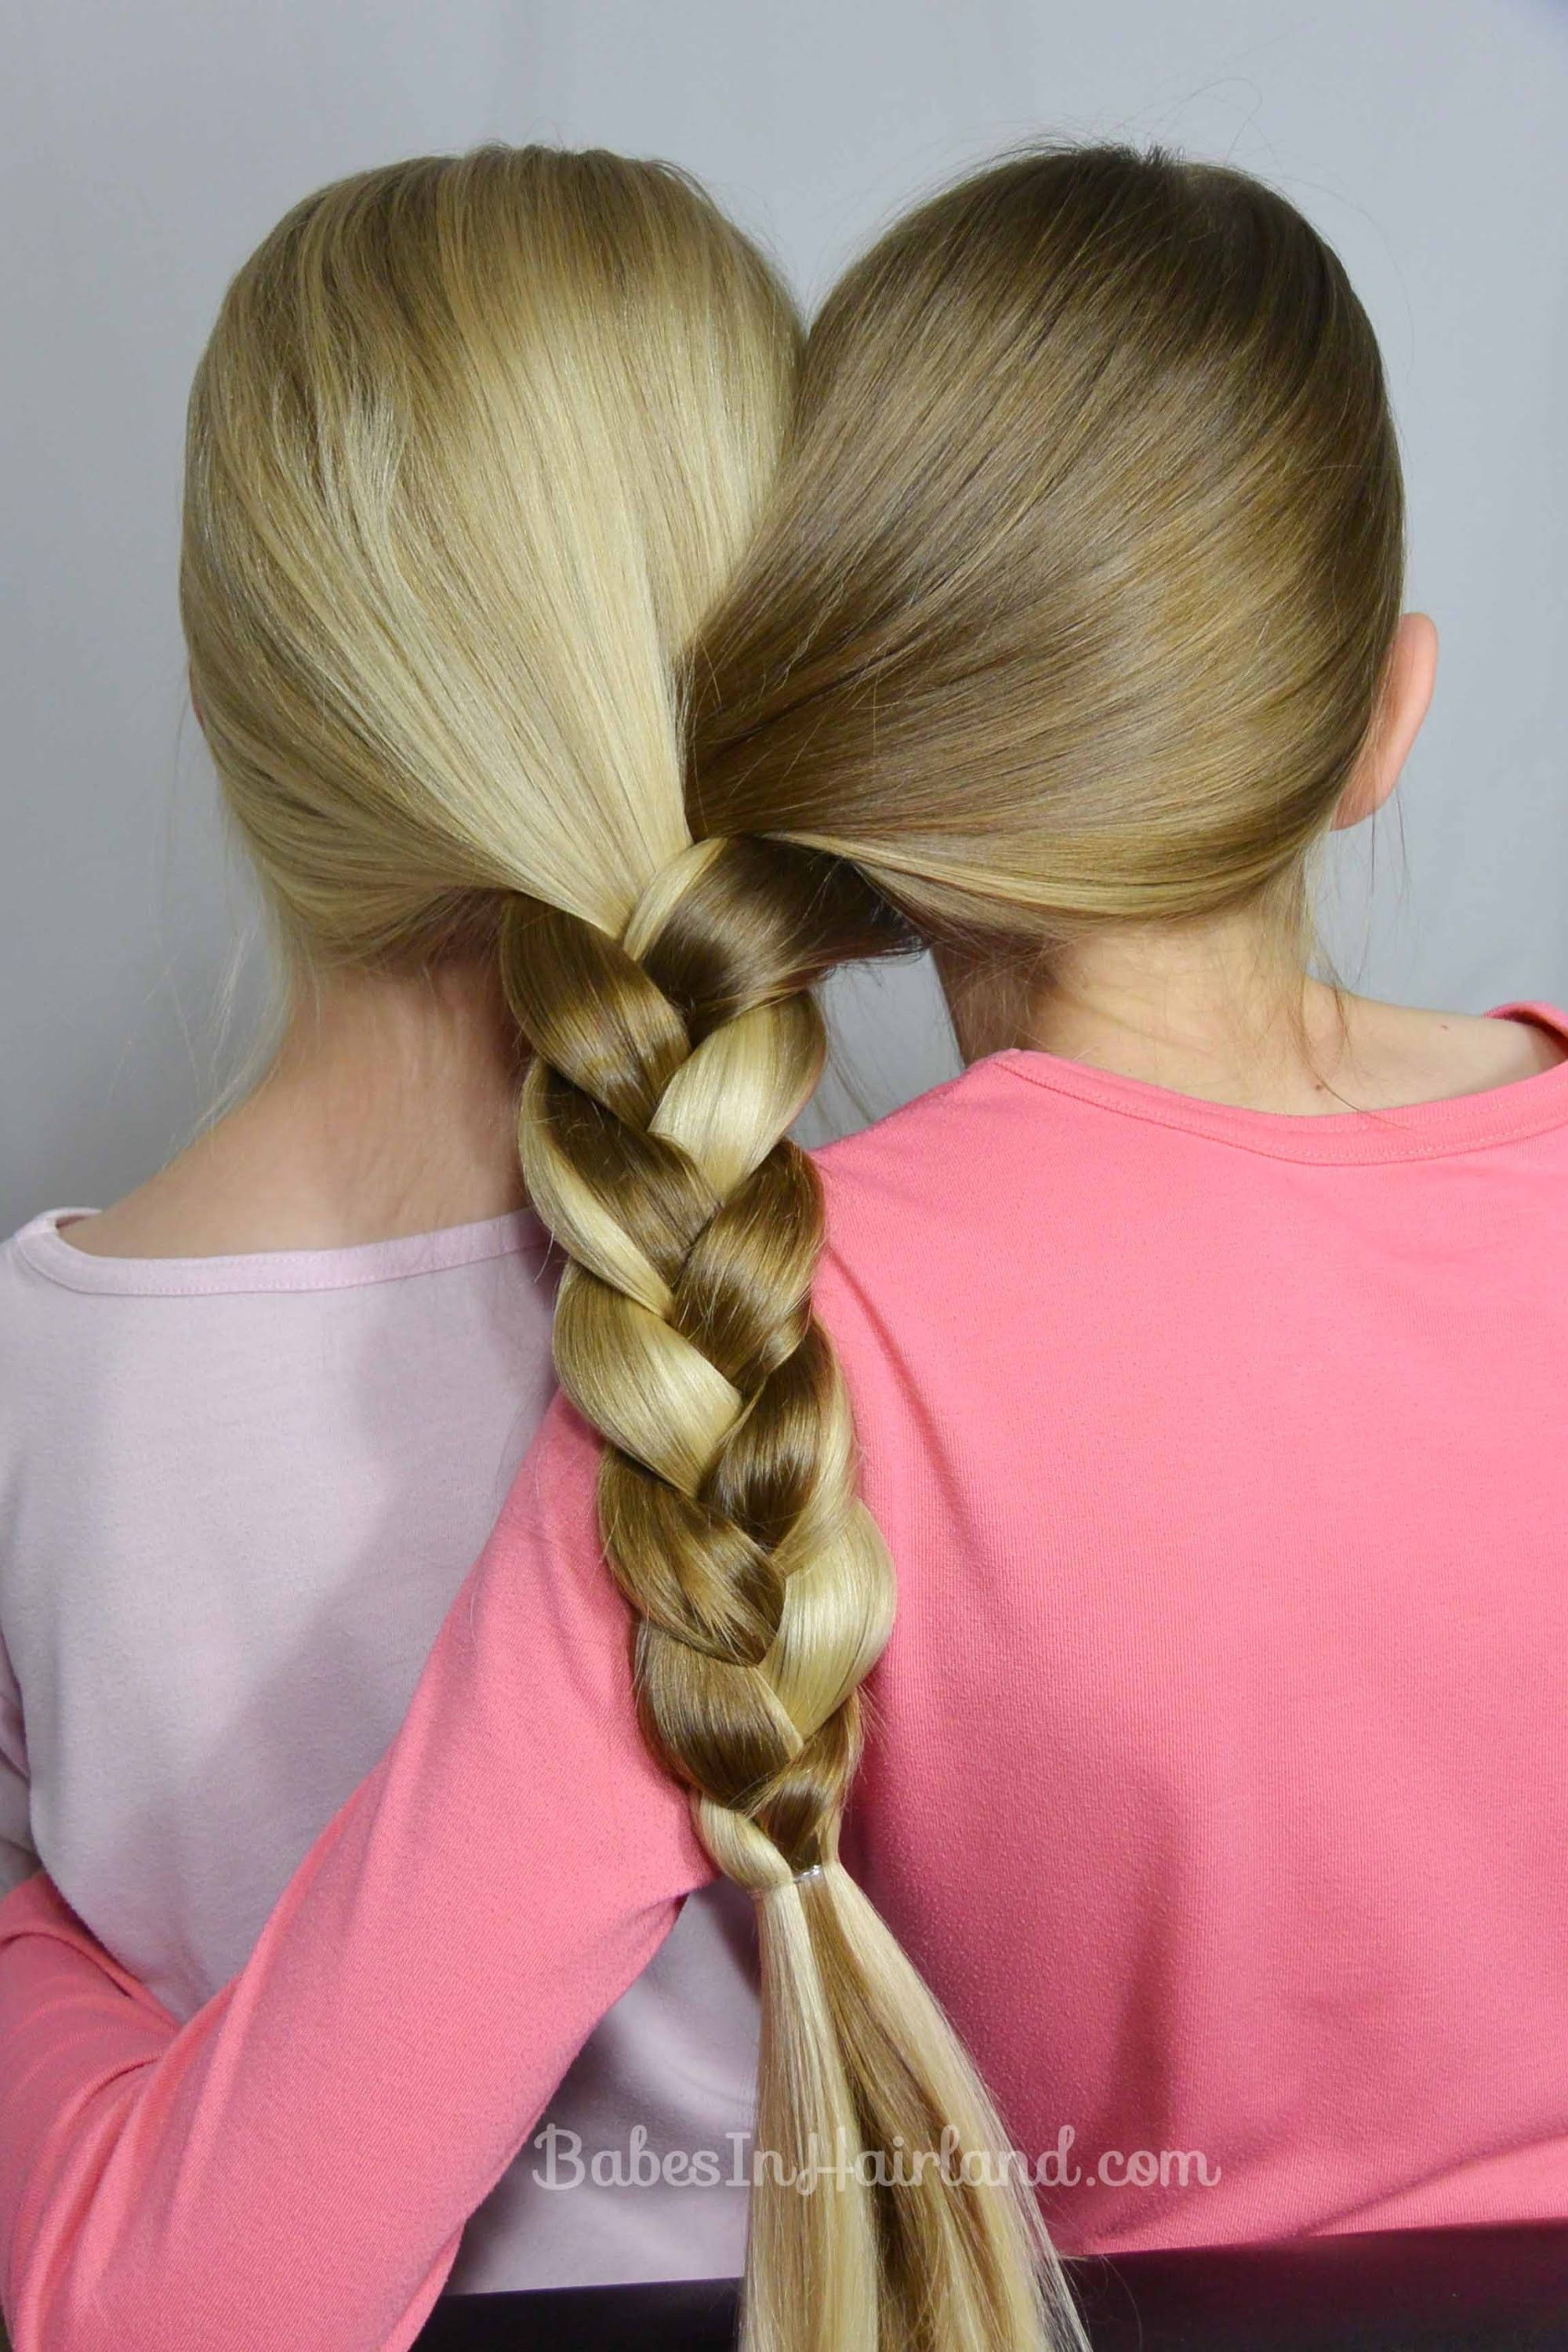 96 Awesome Adorable Hairstyles For School Girls Girls School